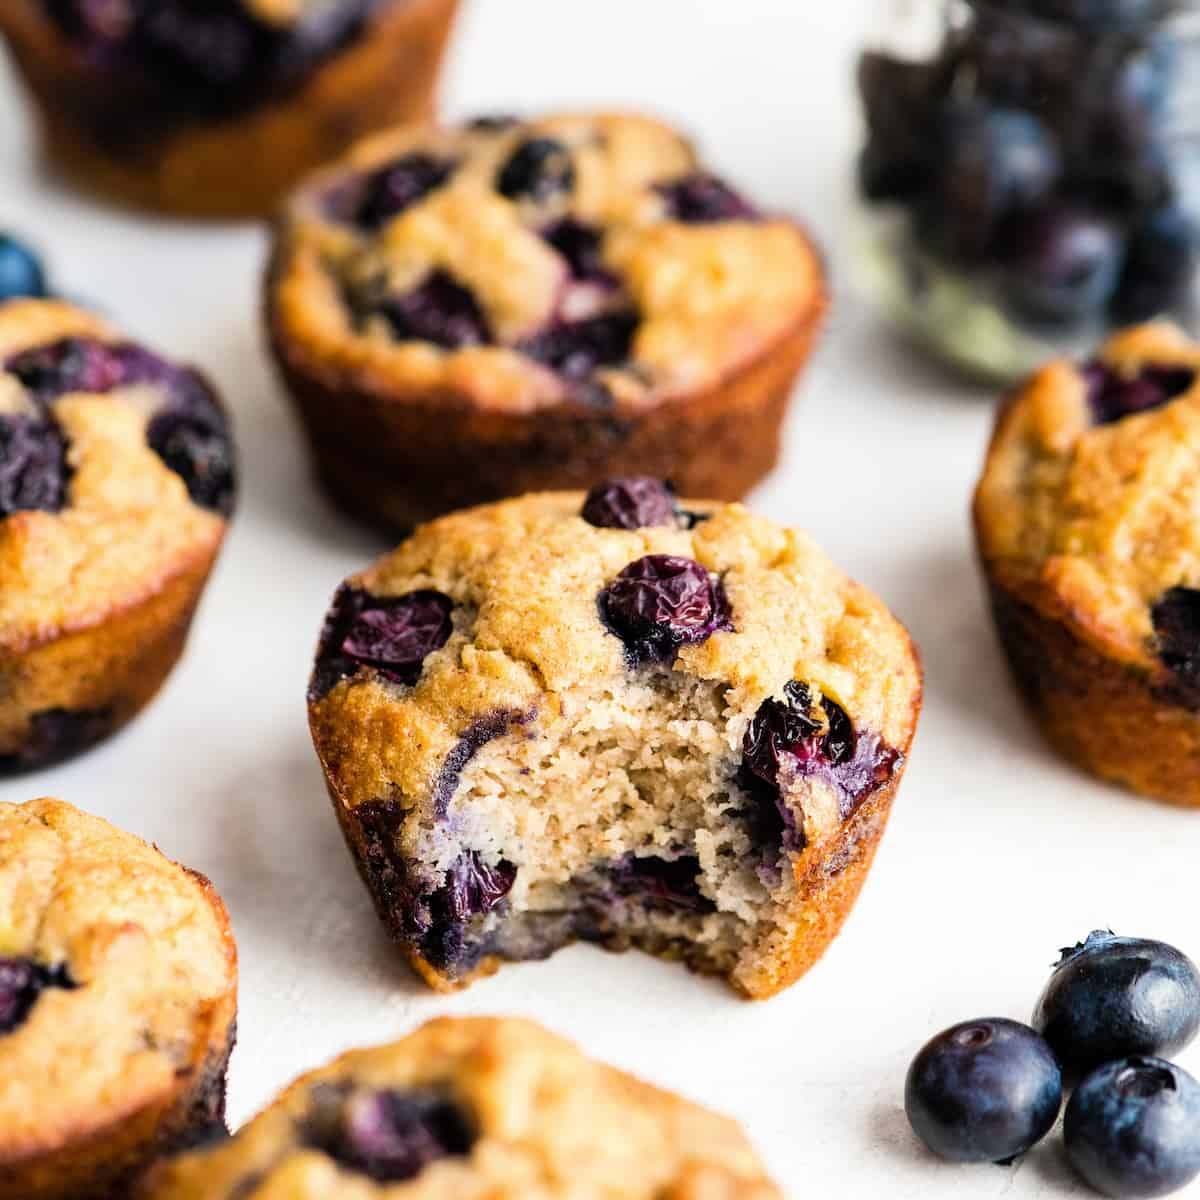 front view of 6 Paleo Blueberry Muffins, one with a bite taken out of it